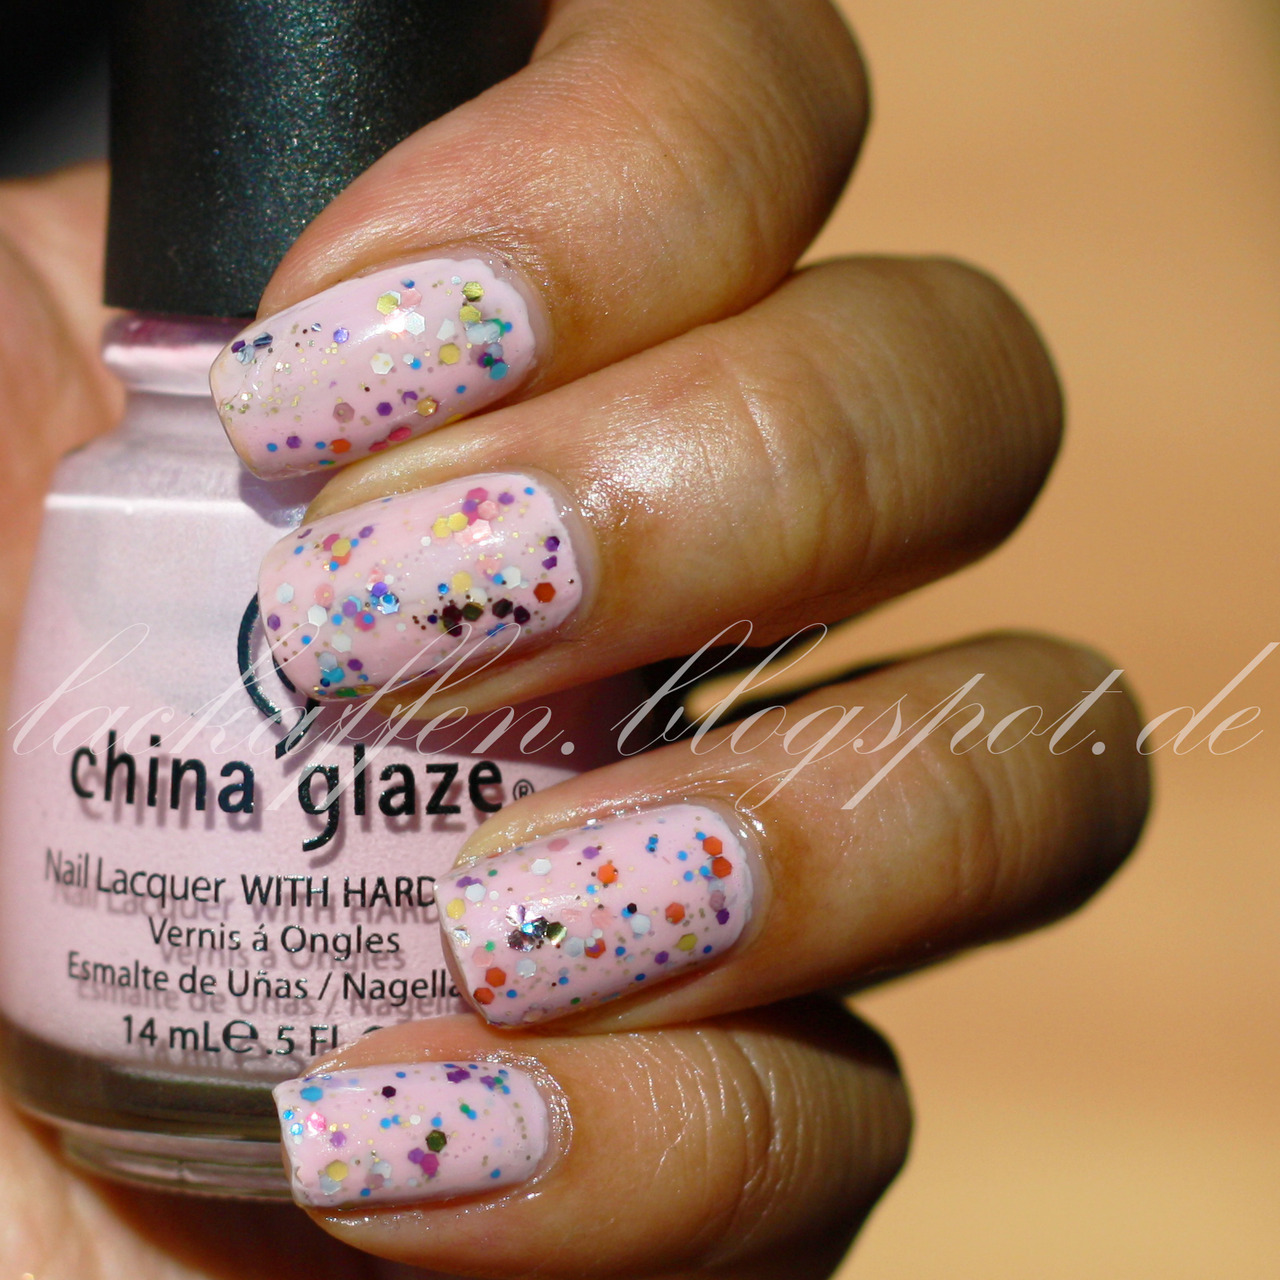 Light pink nail polish with confetti glitter